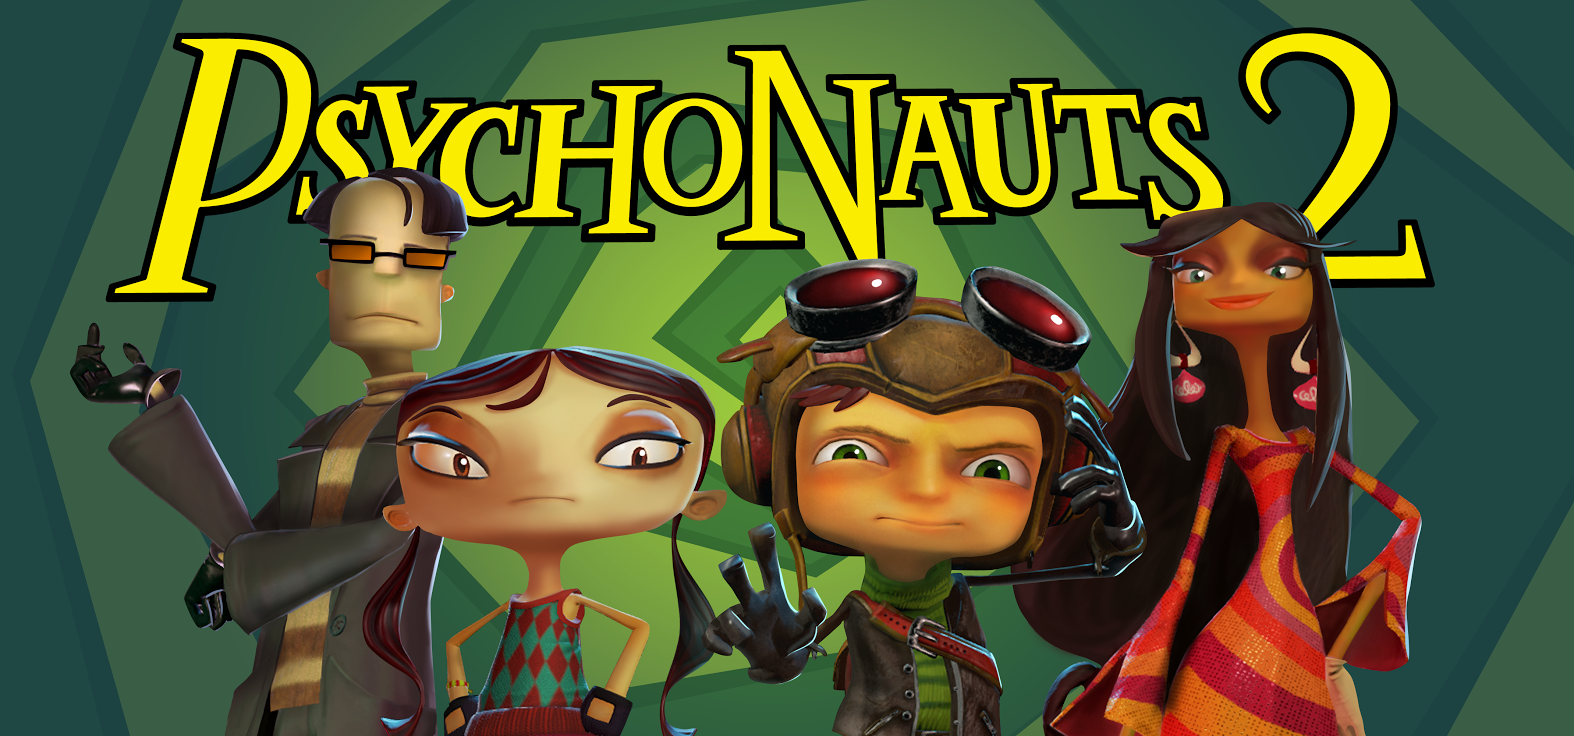 Tim Schafer Reveals Plot Details For Psychonauts 2